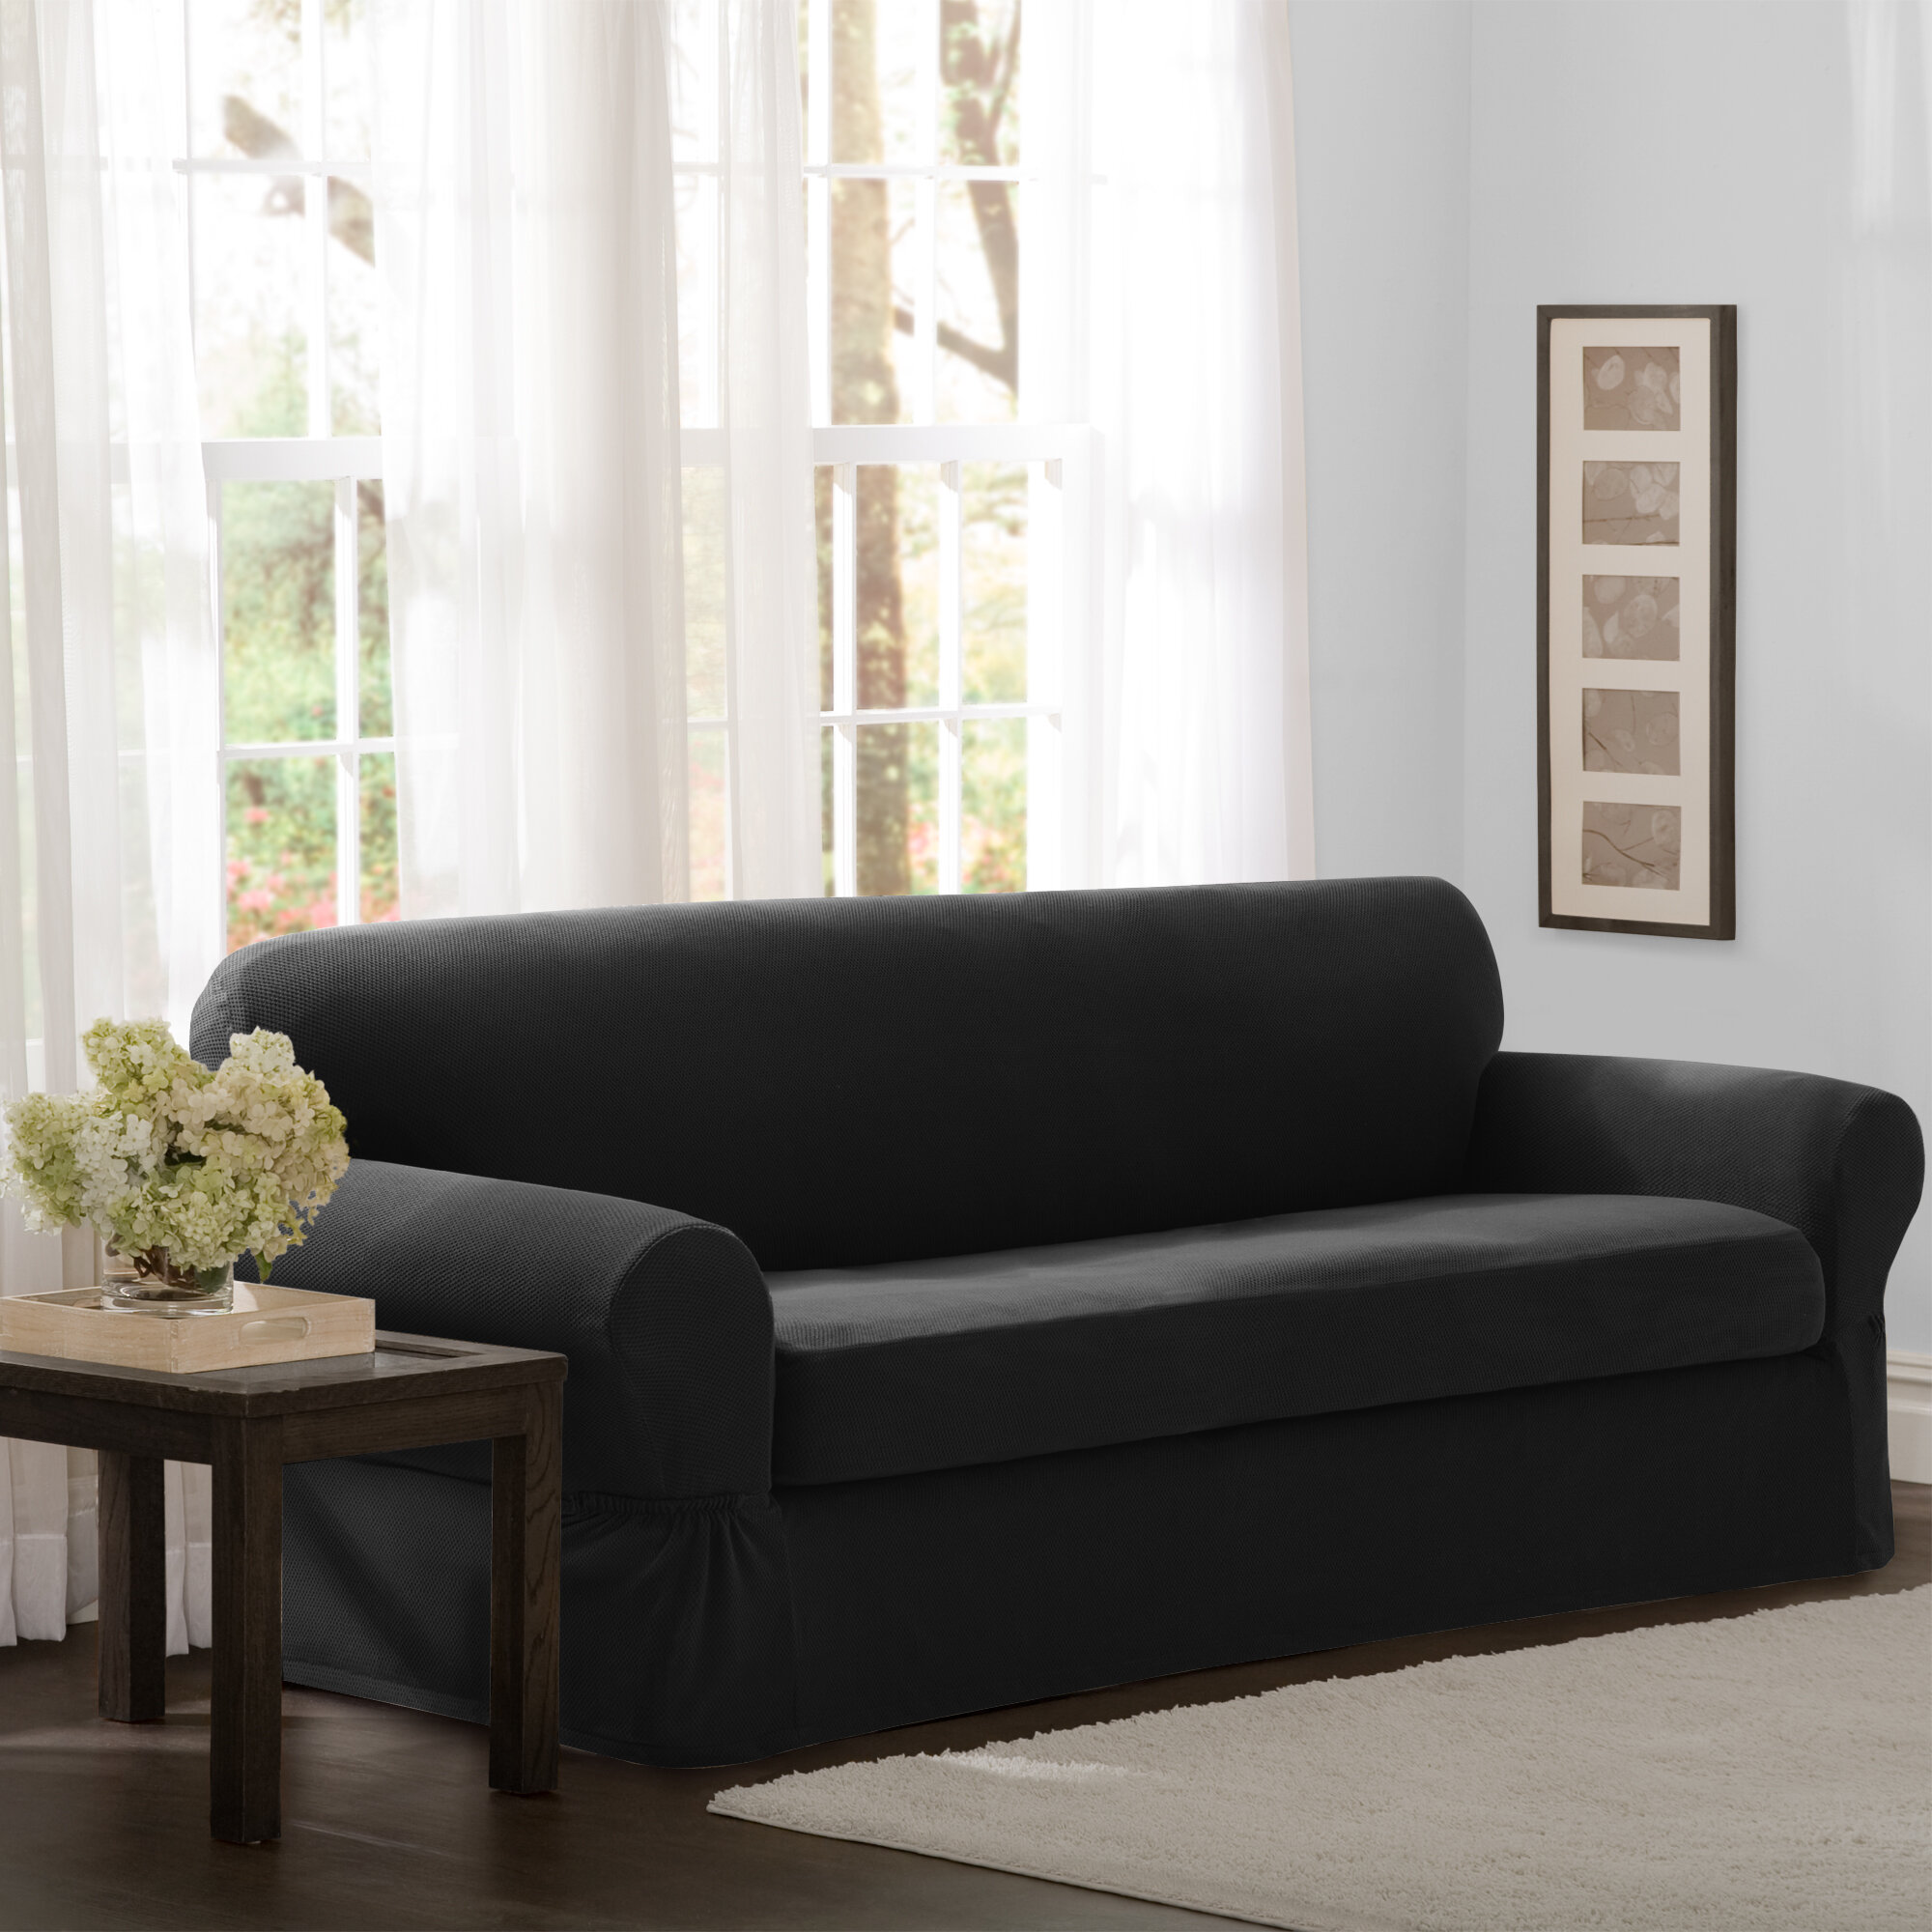 Black Sofa Slipcovers Couches You Ll Love In 2021 Wayfair